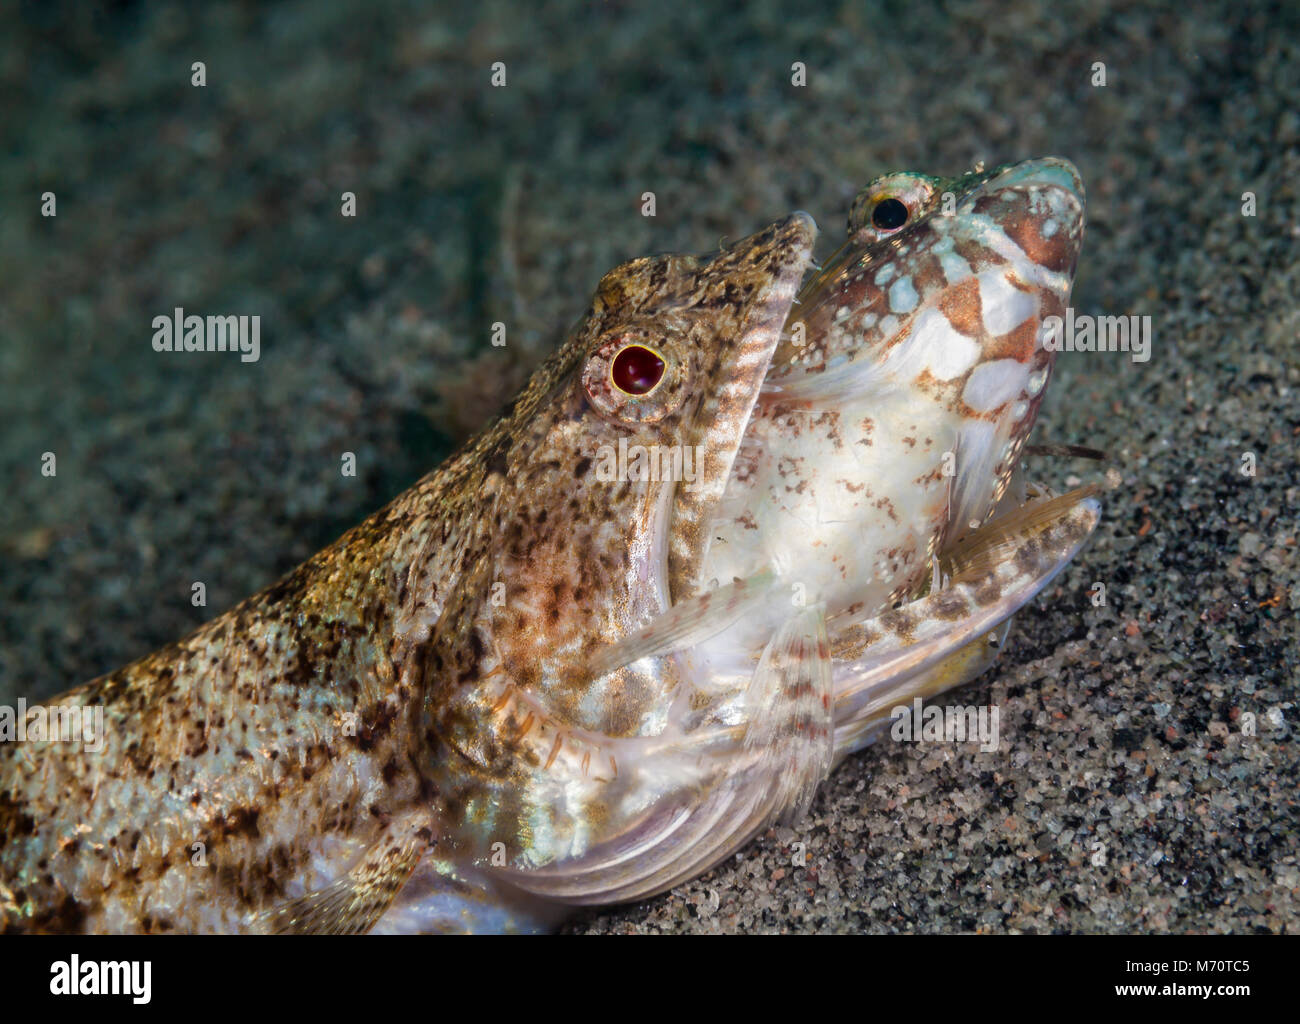 Lizardfish preying on smaller fish in the Philippines - Stock Image